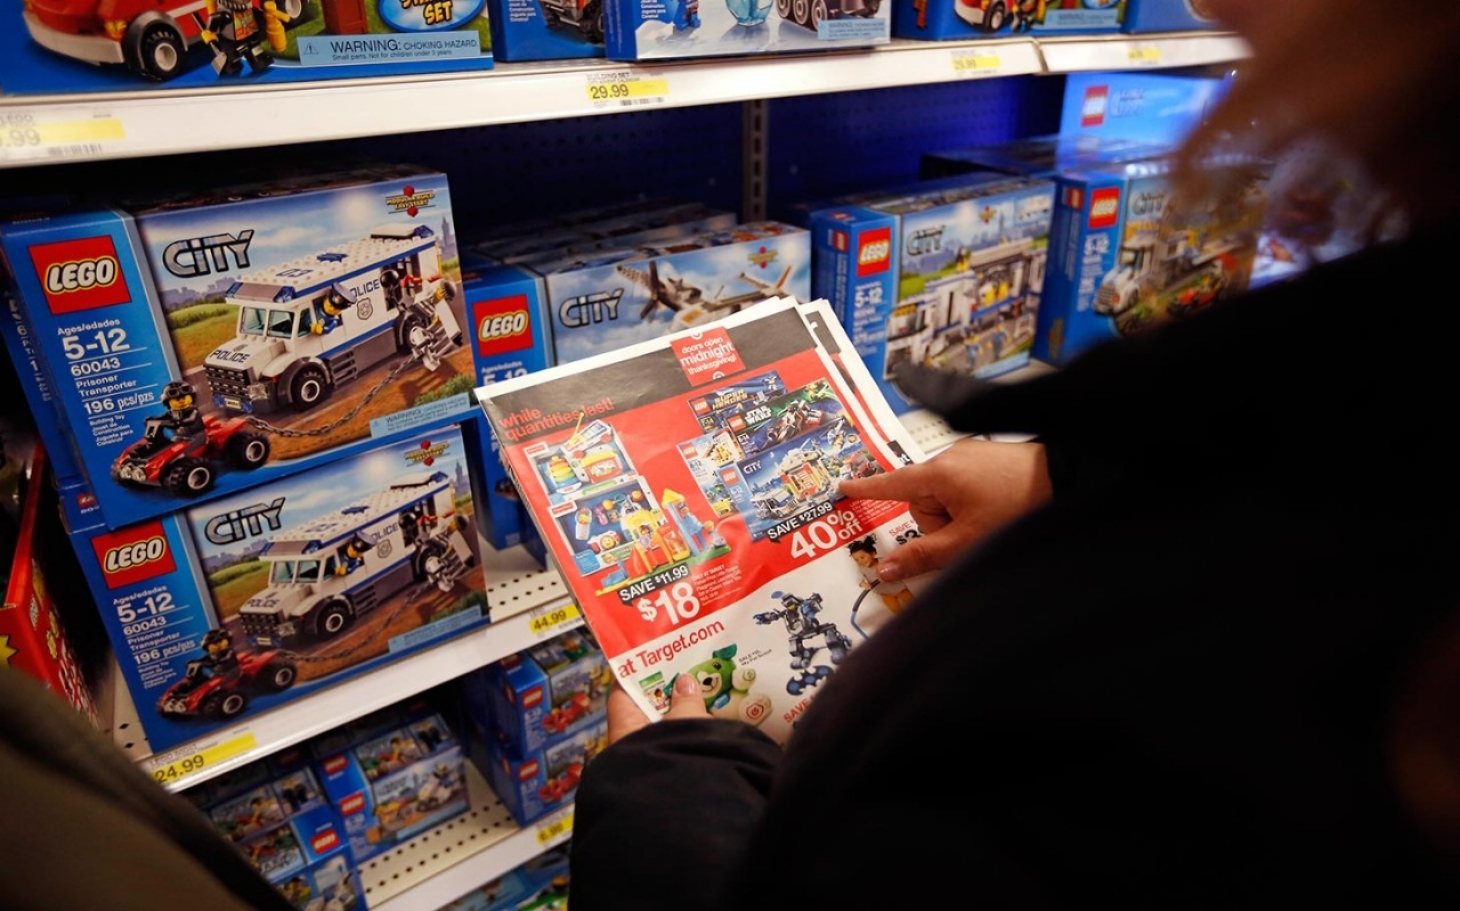 Toy Guitar Target Gender Neutral Toy Sections Are Good For Boys Too Al Jazeera